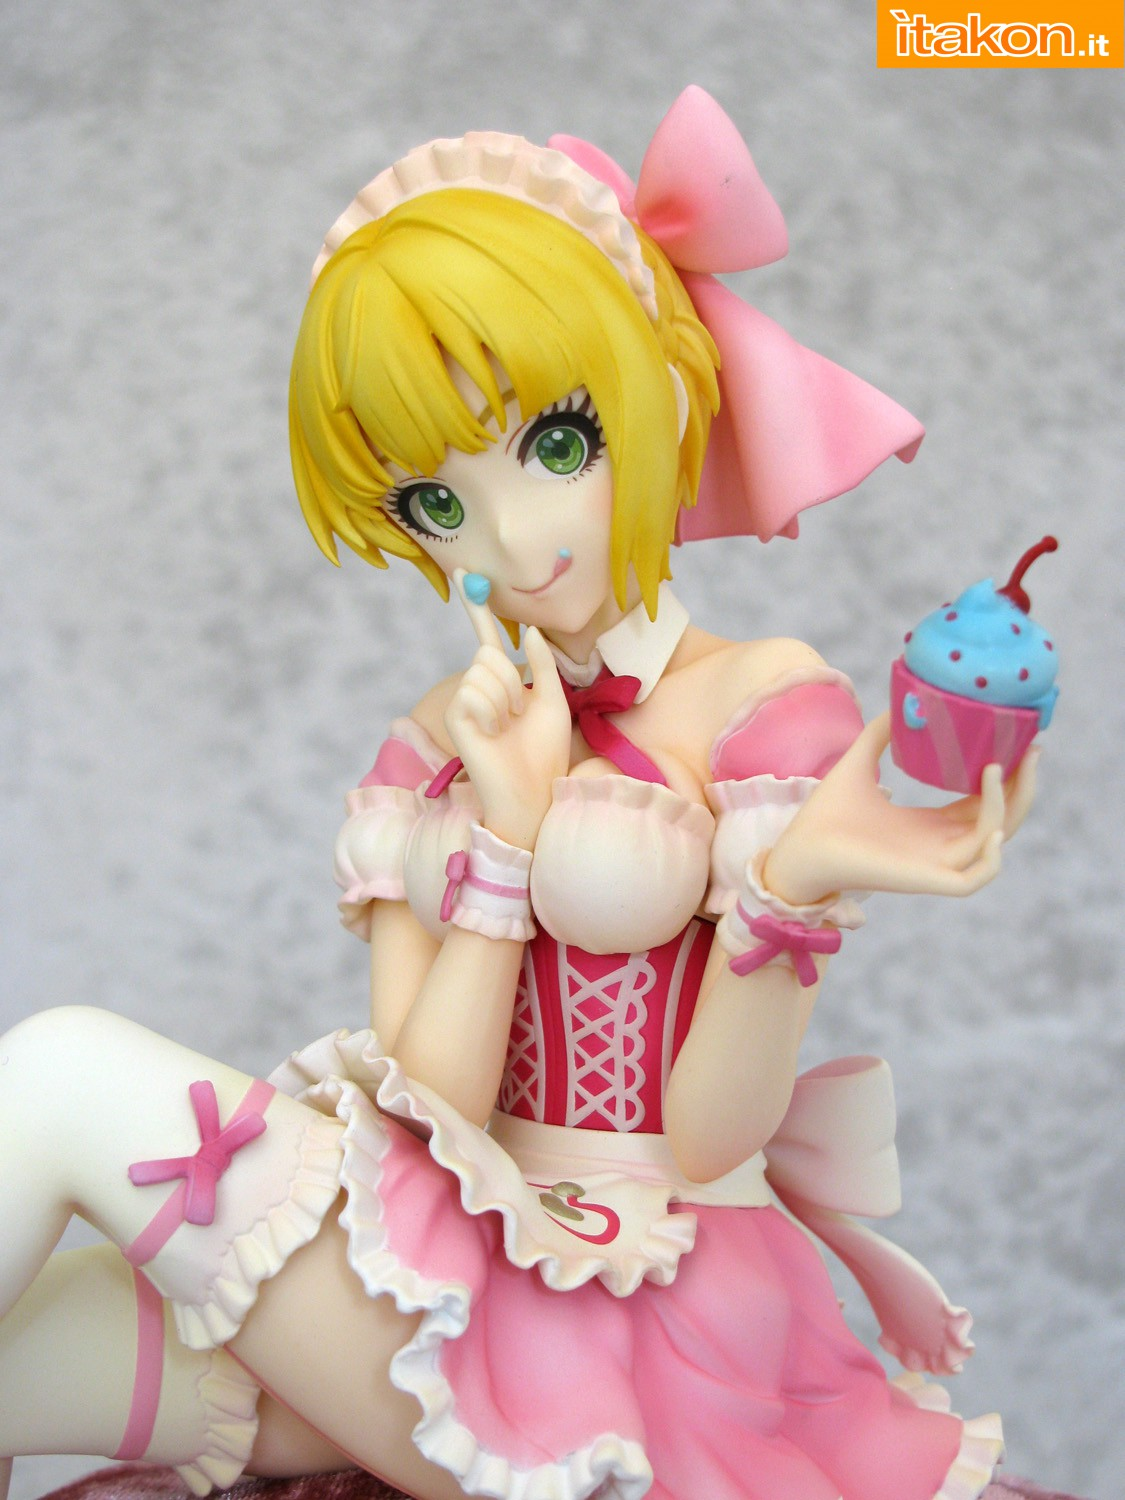 Link a 012 Frederica Miyamoto Little Devil Maid Phat recensione